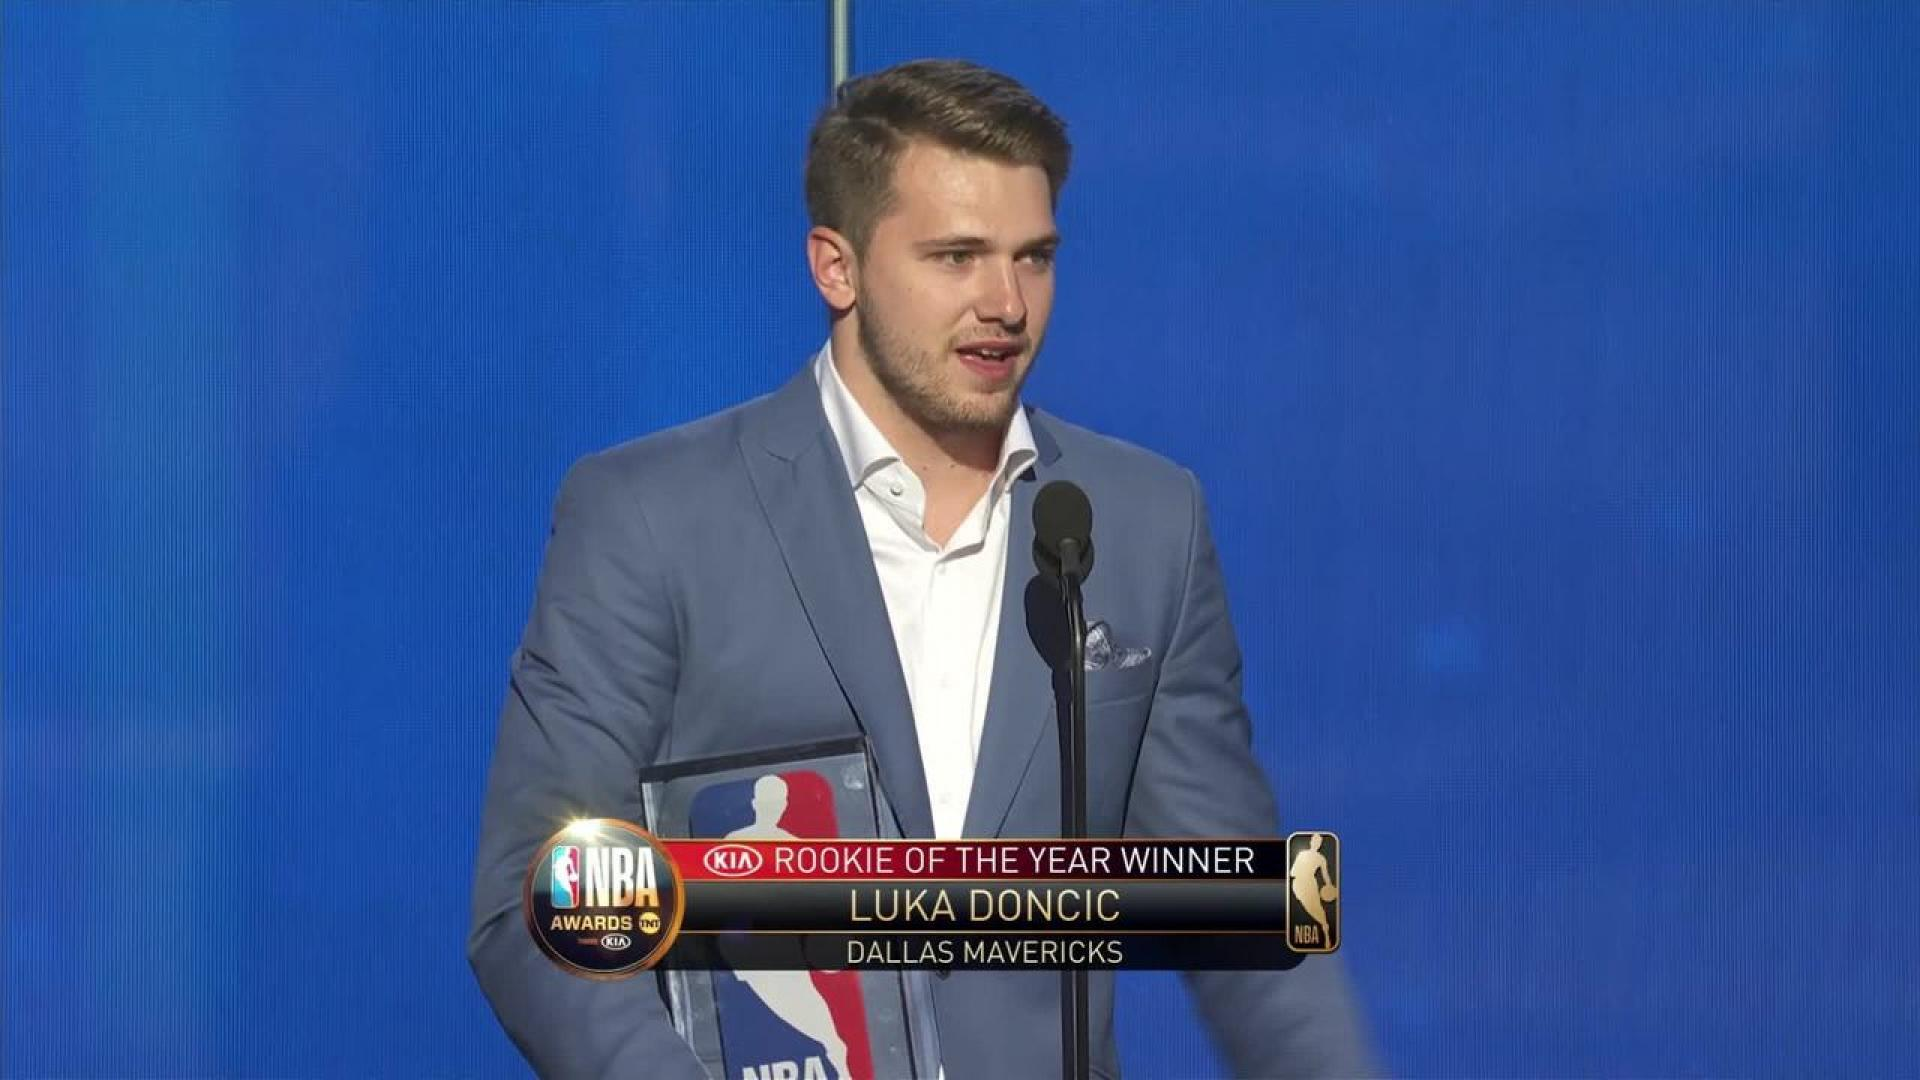 Luka Doncic wins the 2019 Rookie of the Year Award at the NBA 1920x1080